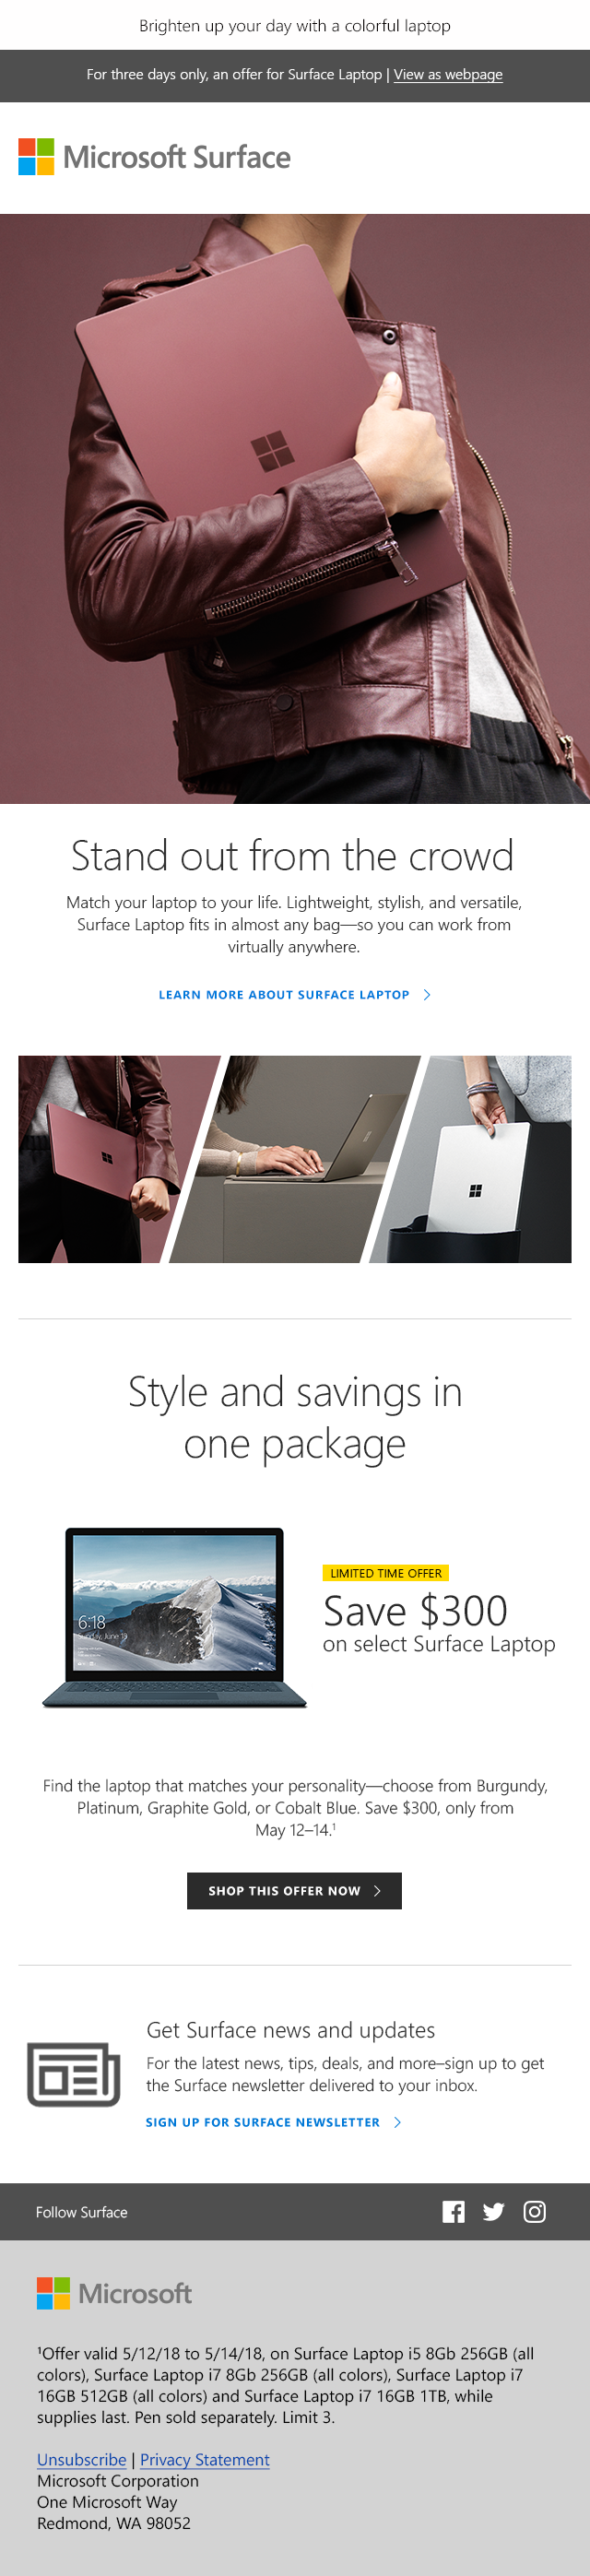 Surface_Laptop_Offer_Prospects_05042018.png